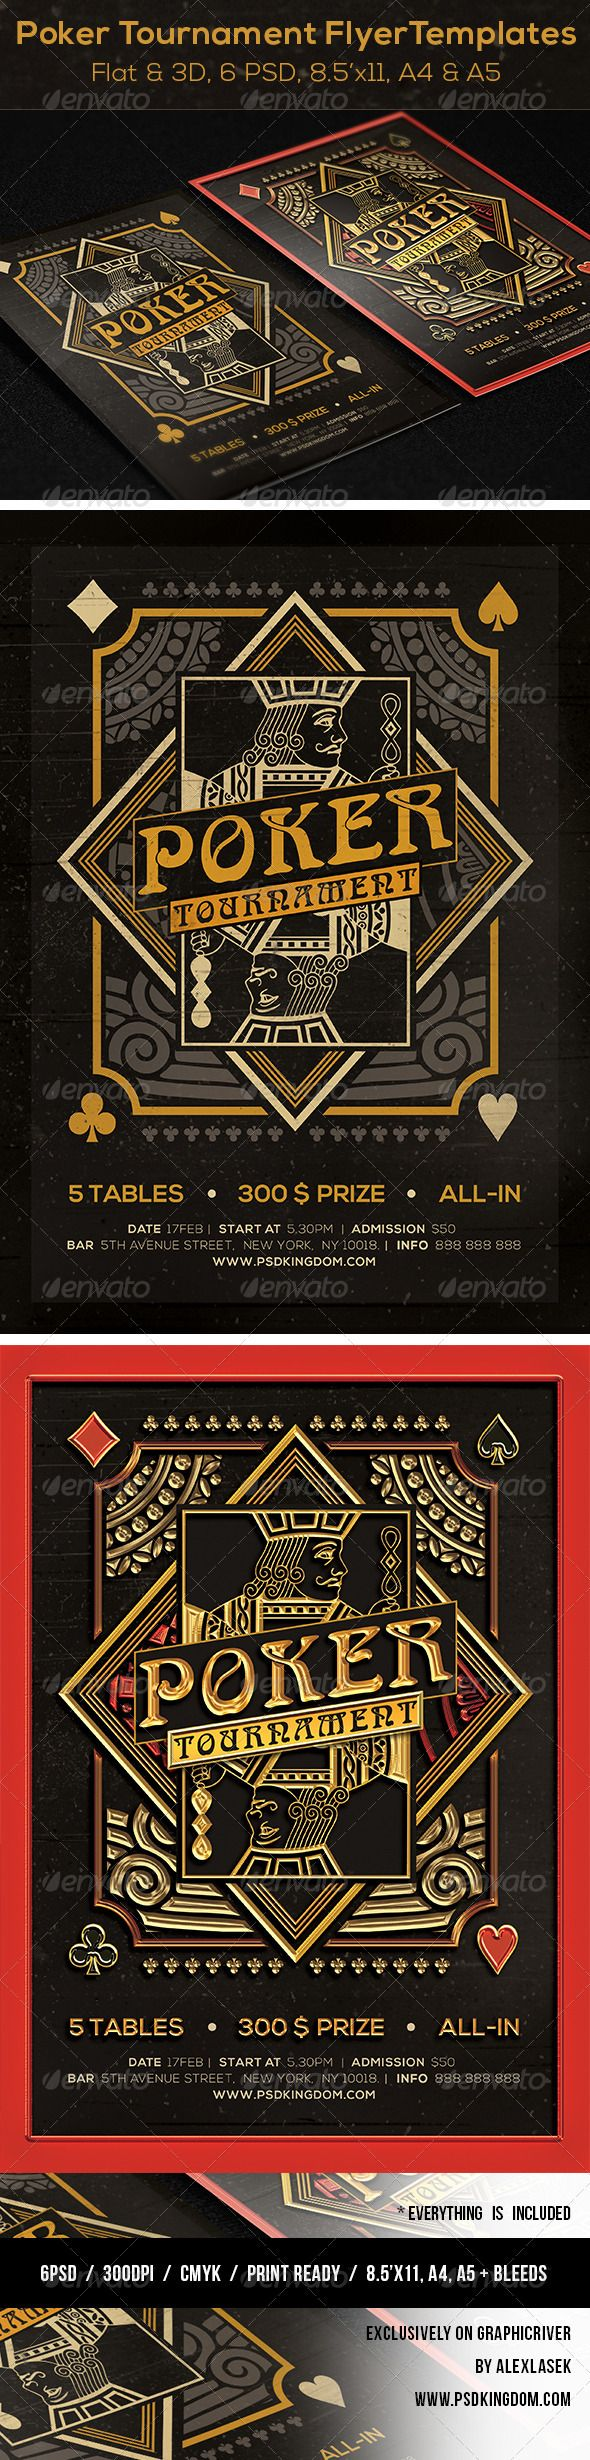 8 5x11 poster design - Cool Poker Magazine Ad Poster Or Flyer Psd Template Only Available Here Http